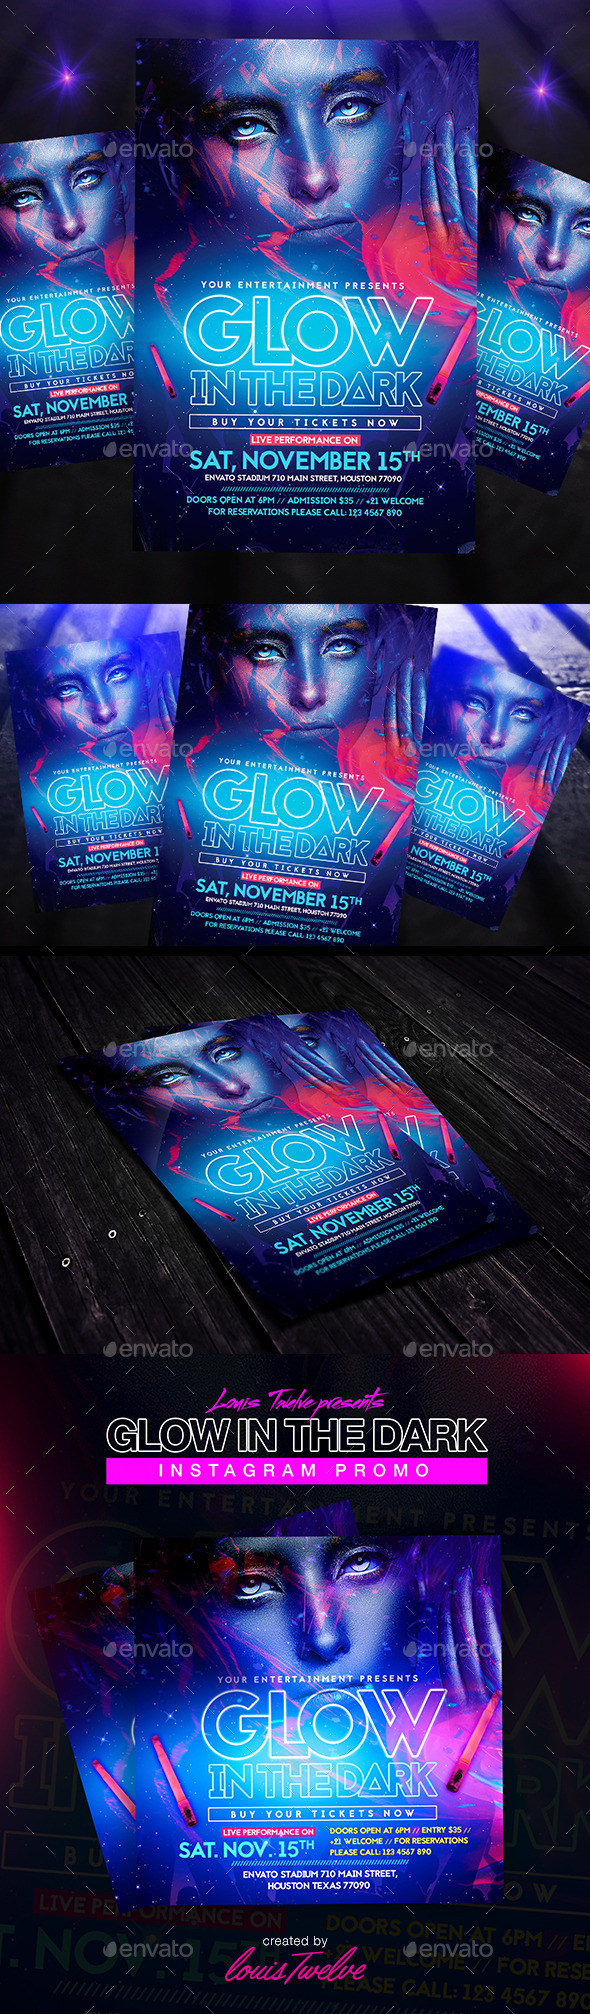 Glow in the Dark | Flyer + Instagram Promo - Clubs and Parties Events